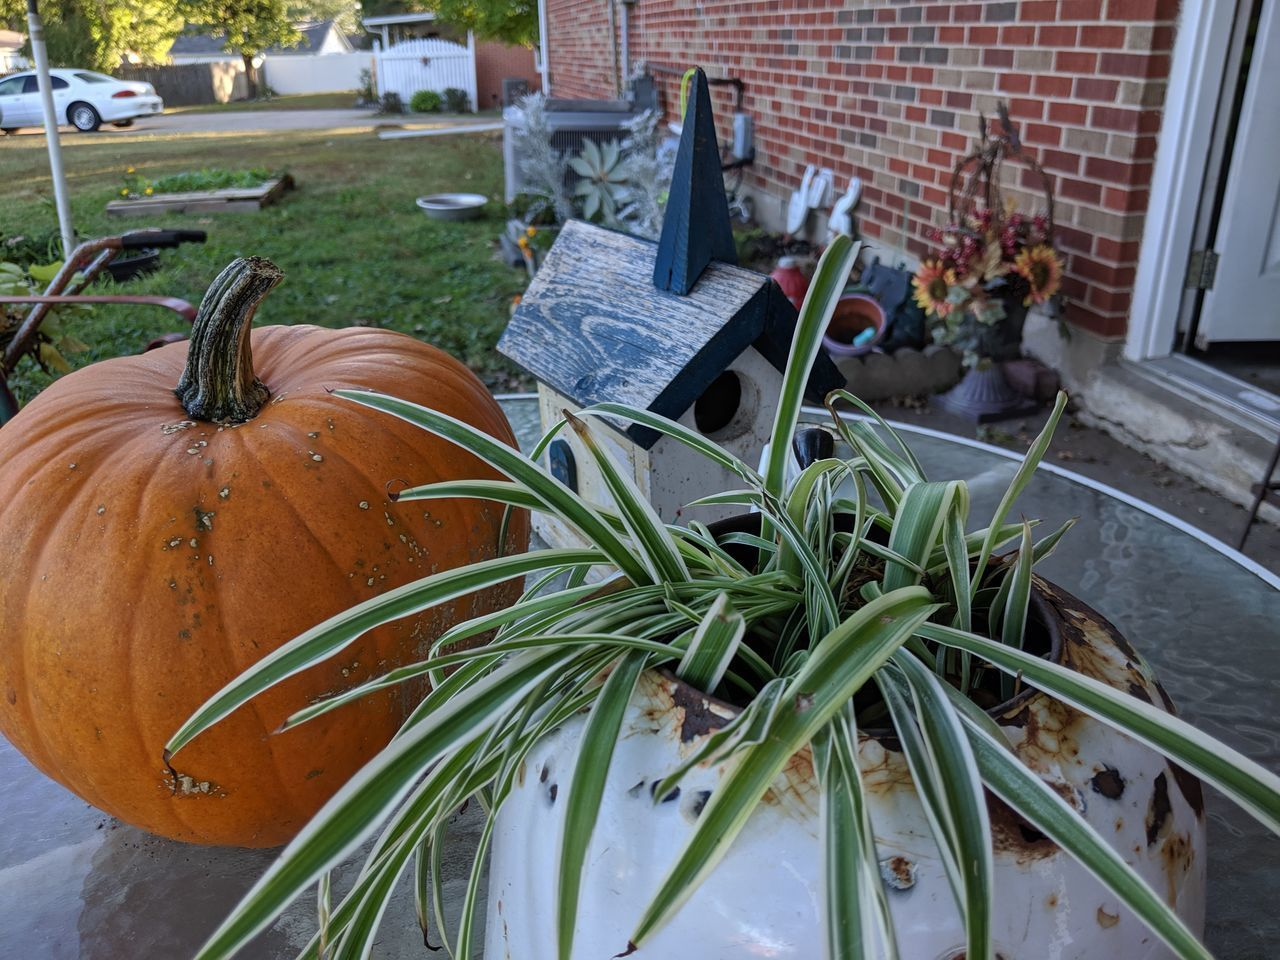 pumpkin, food and drink, plant, food, day, high angle view, no people, freshness, close-up, growth, nature, vegetable, decoration, container, plant part, outdoors, architecture, green color, leaf, healthy eating